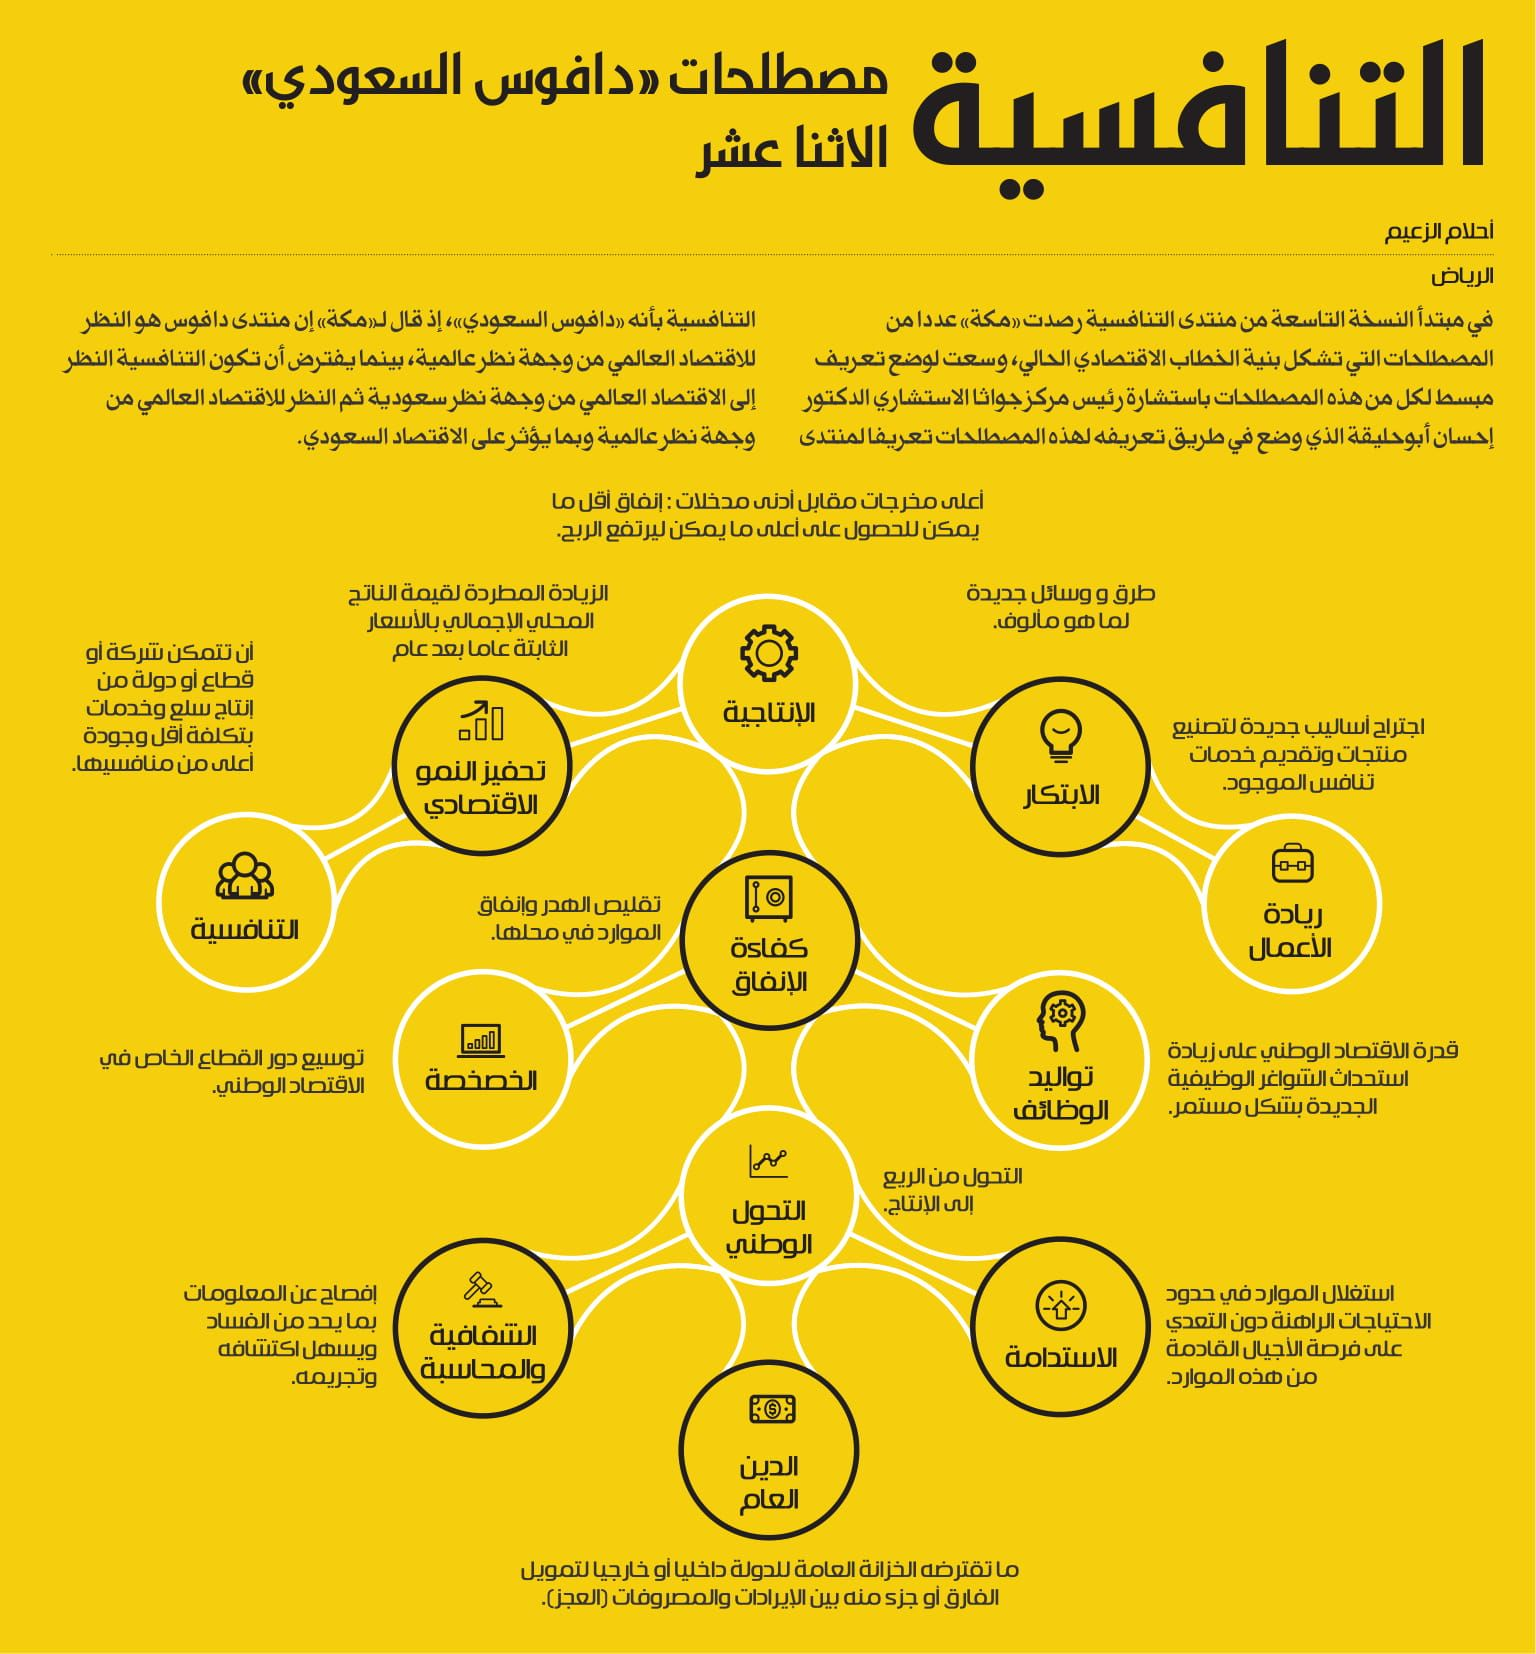 Pin By Amani On Infographic Makkahnp Infographic Amer